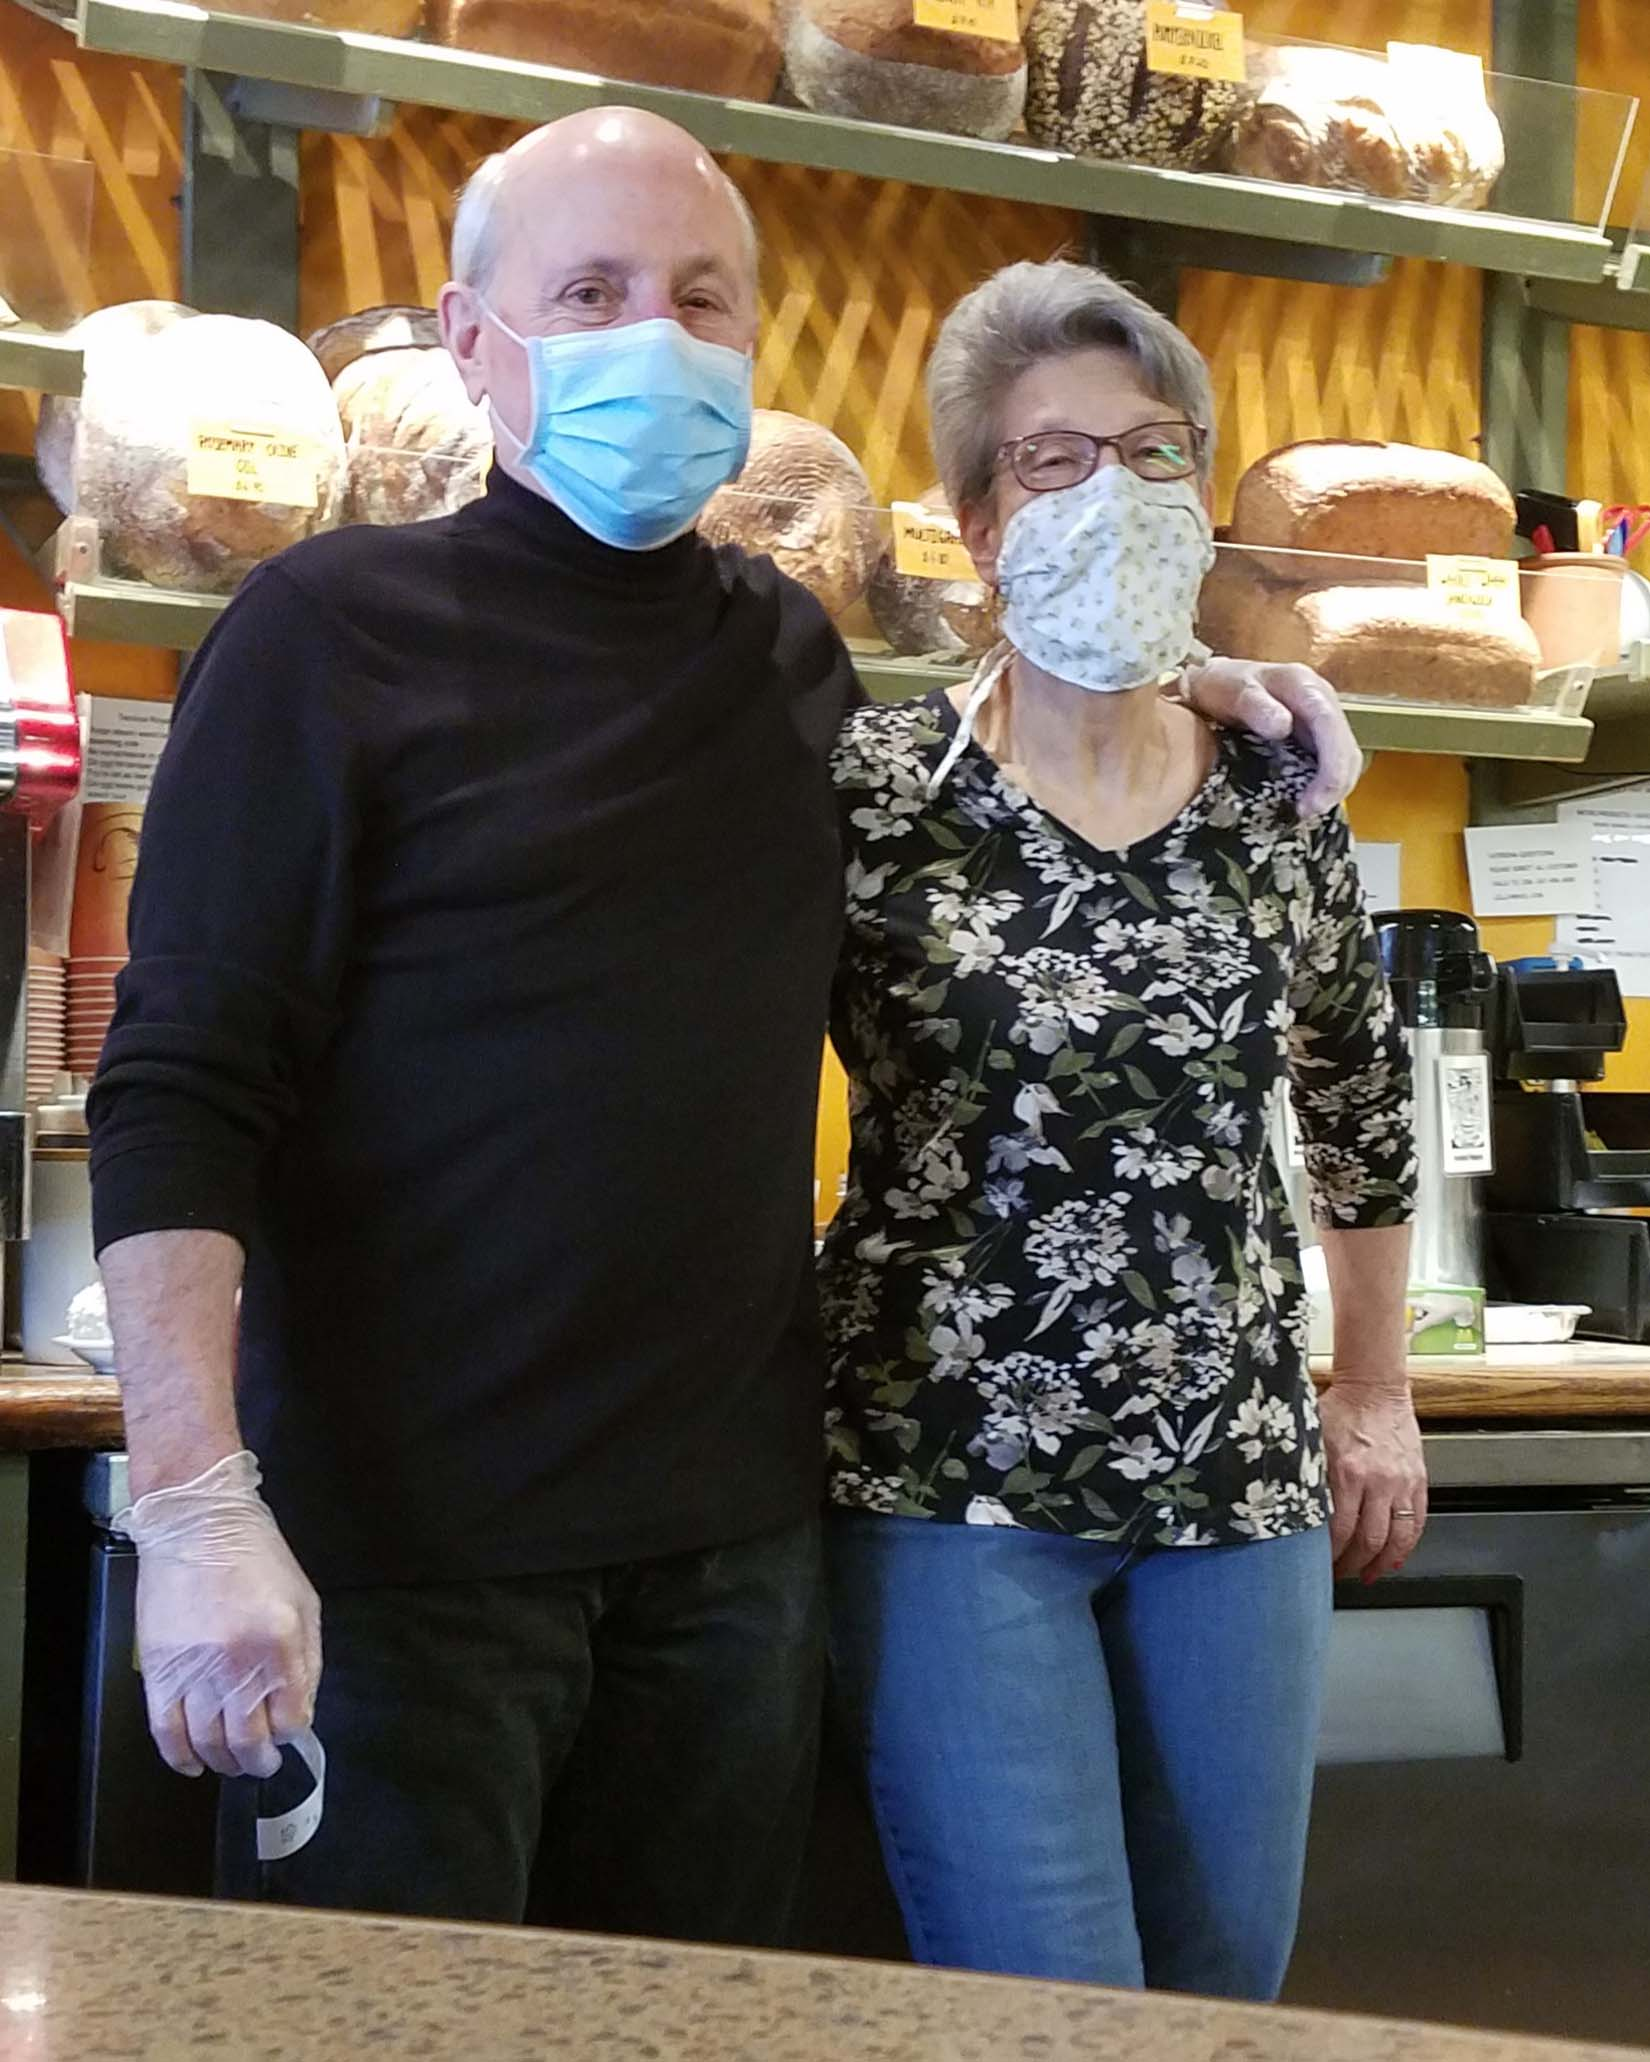 jim lilly and wife in bakery with masks